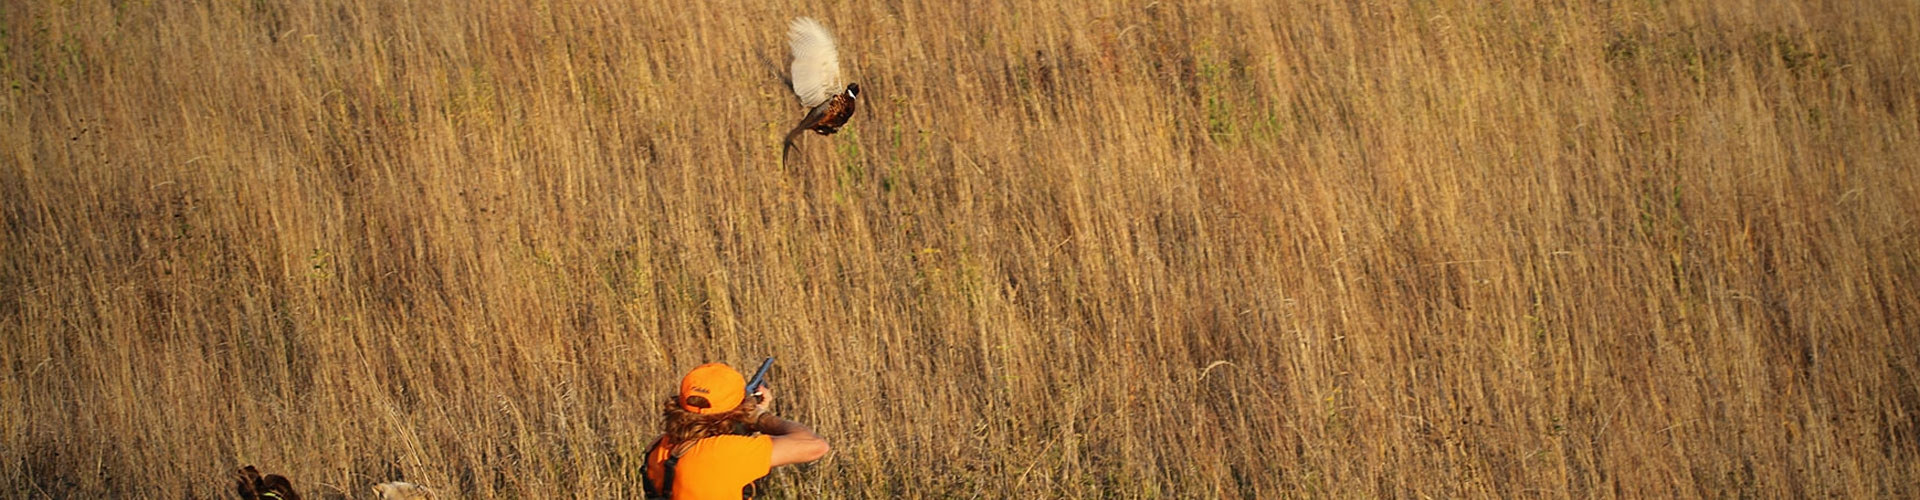 South Dakota Small Group Pheasant Hunts